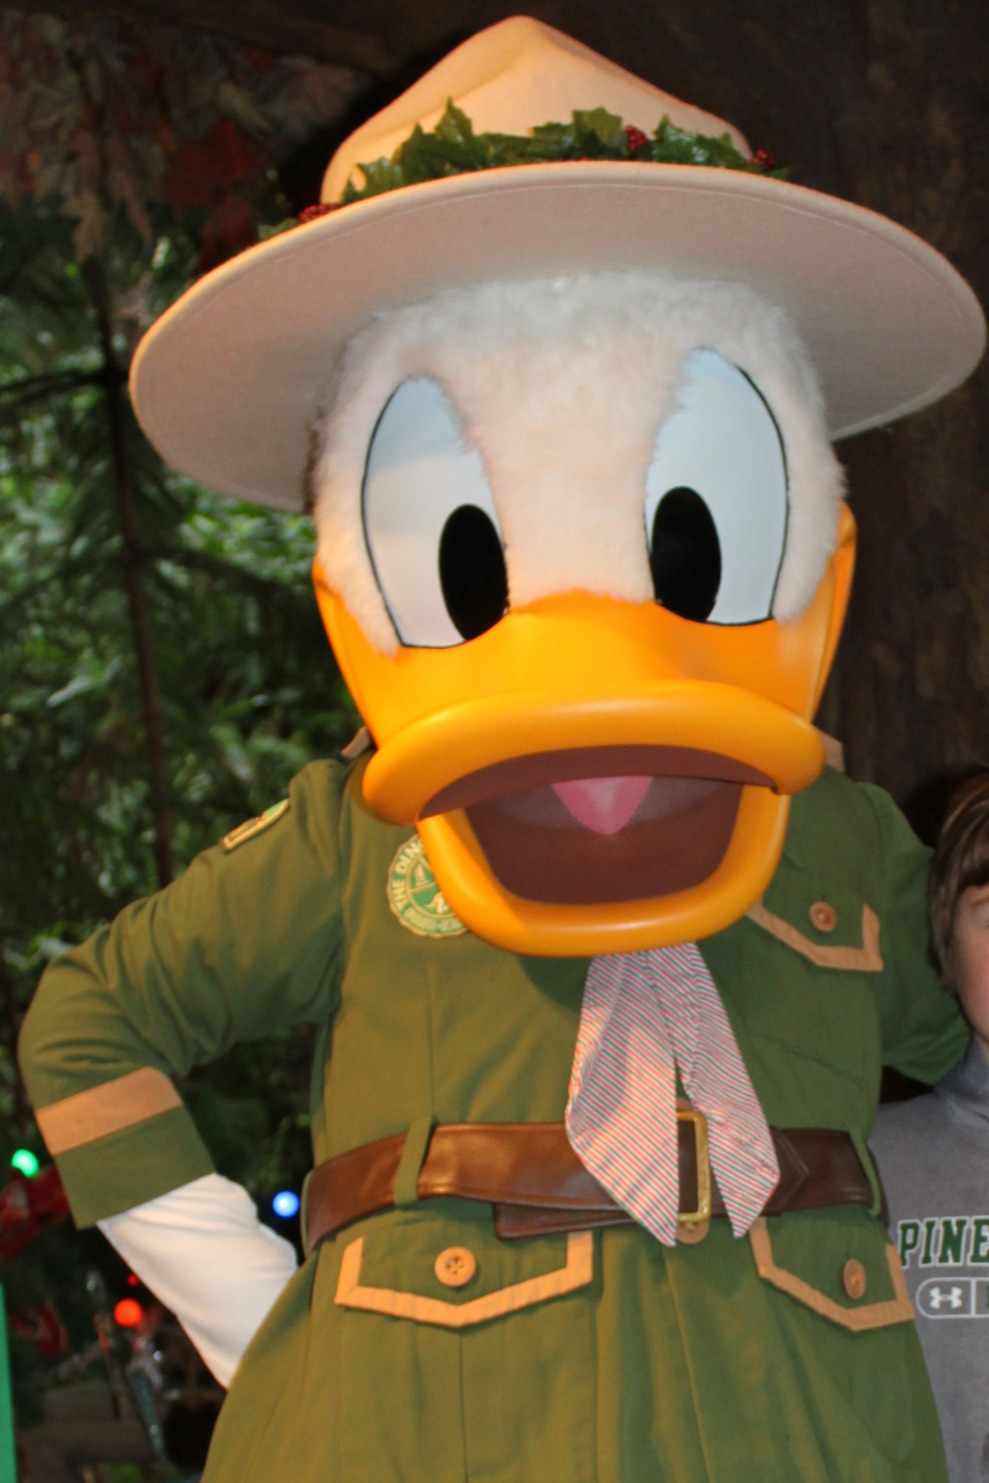 Old Donald